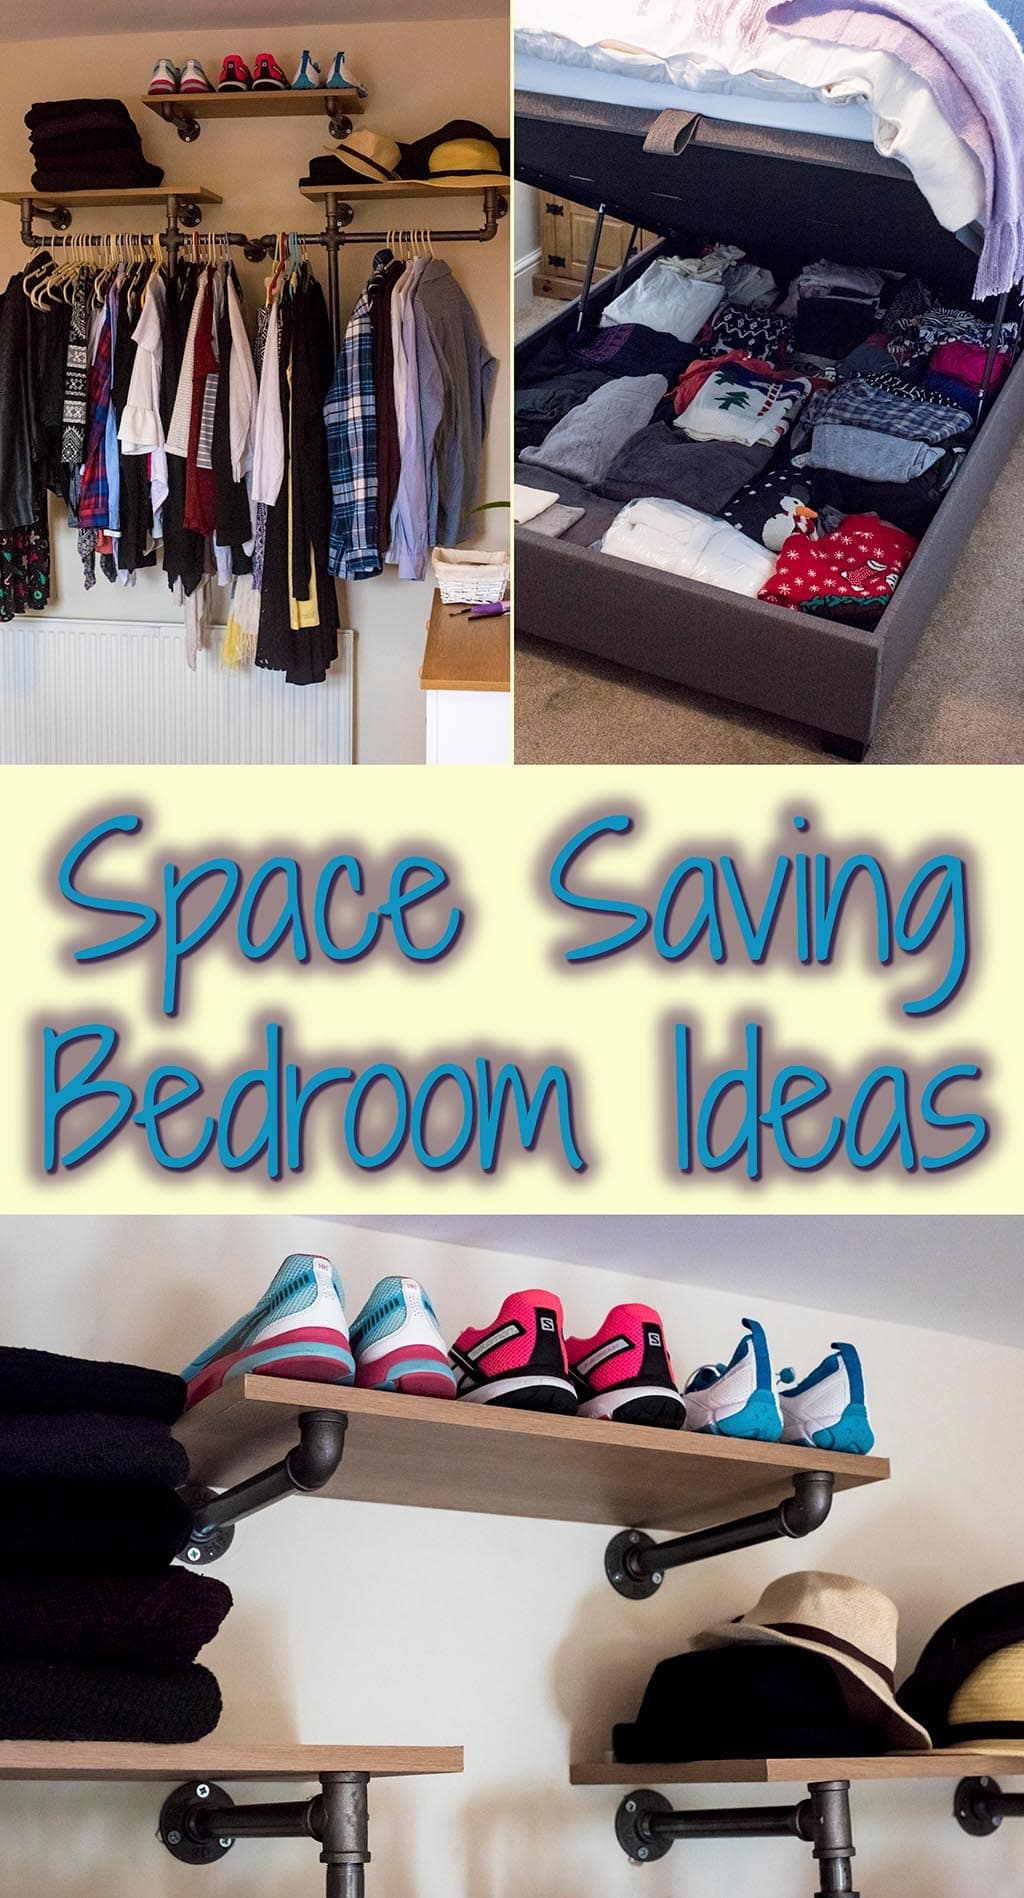 Space Saving Bedroom Ideas  Hungry Healthy Happy